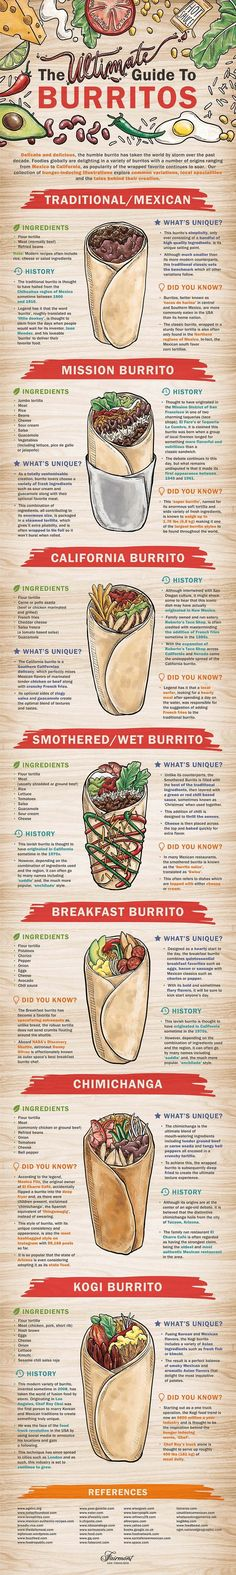 The Ultimate Guide to Burritos #infographic #Food #Burritos #italianinfographic